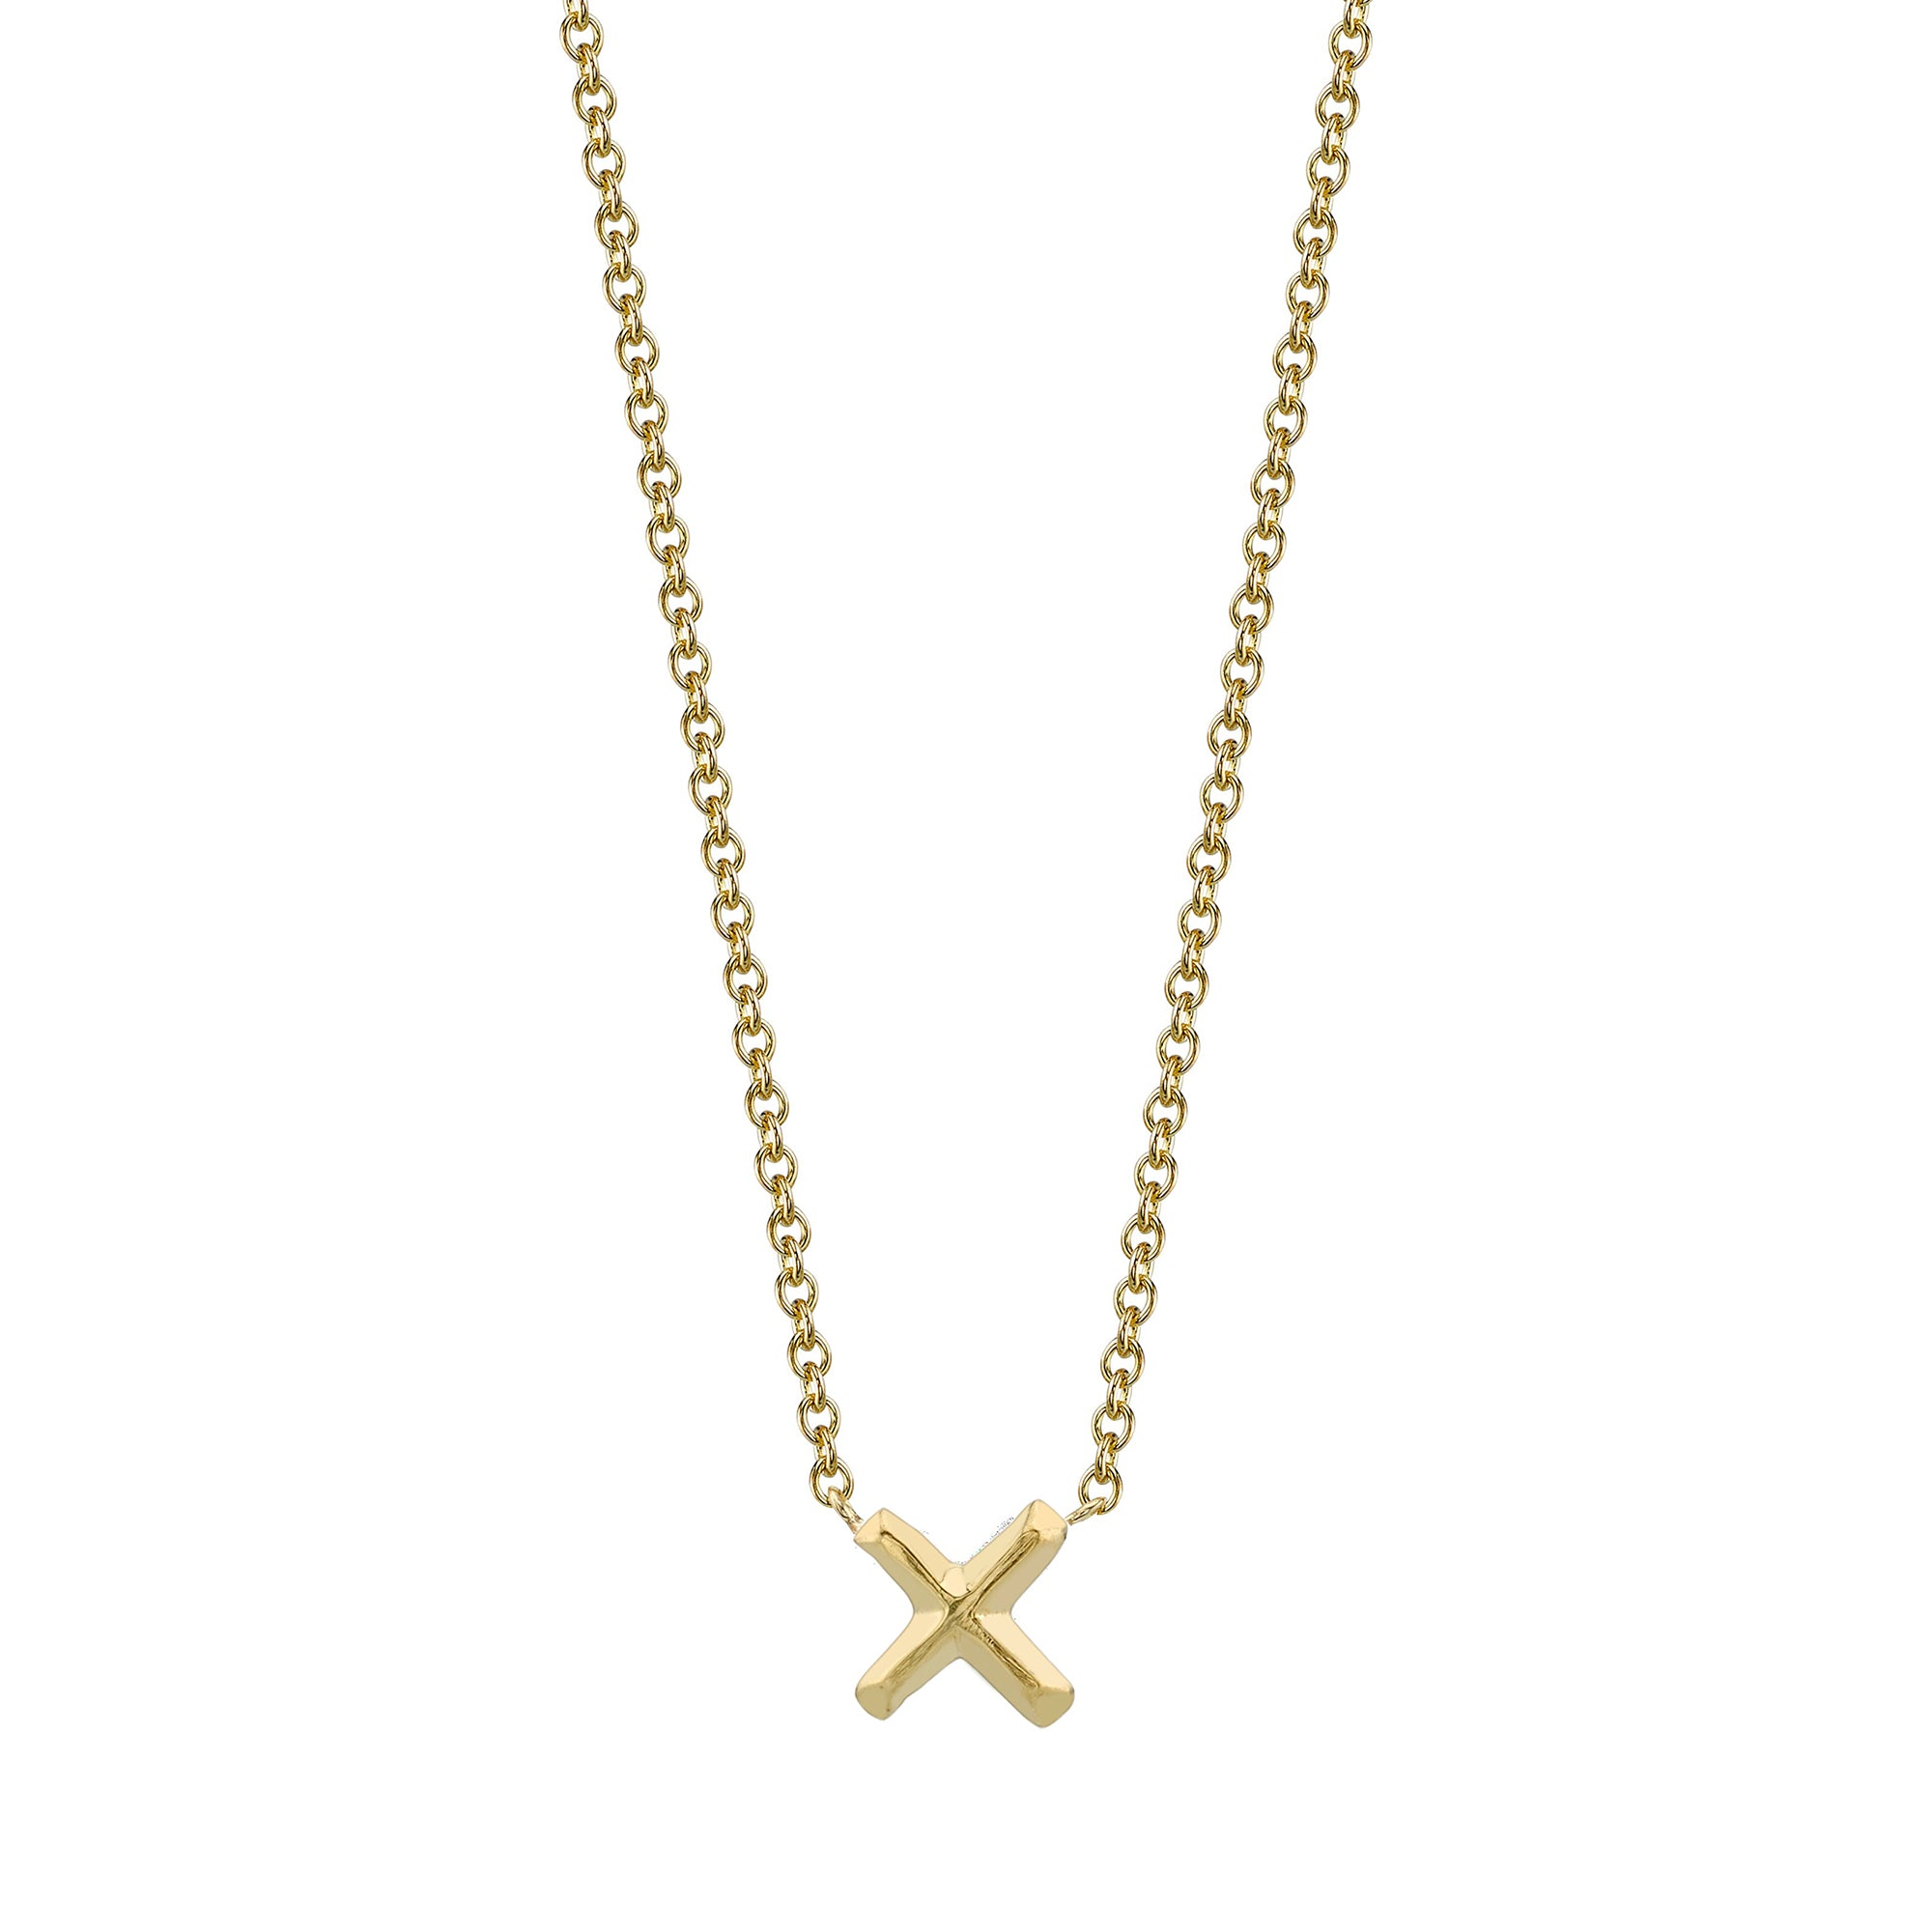 X Necklace by Lizzie Mandler for Broken English Jewelry